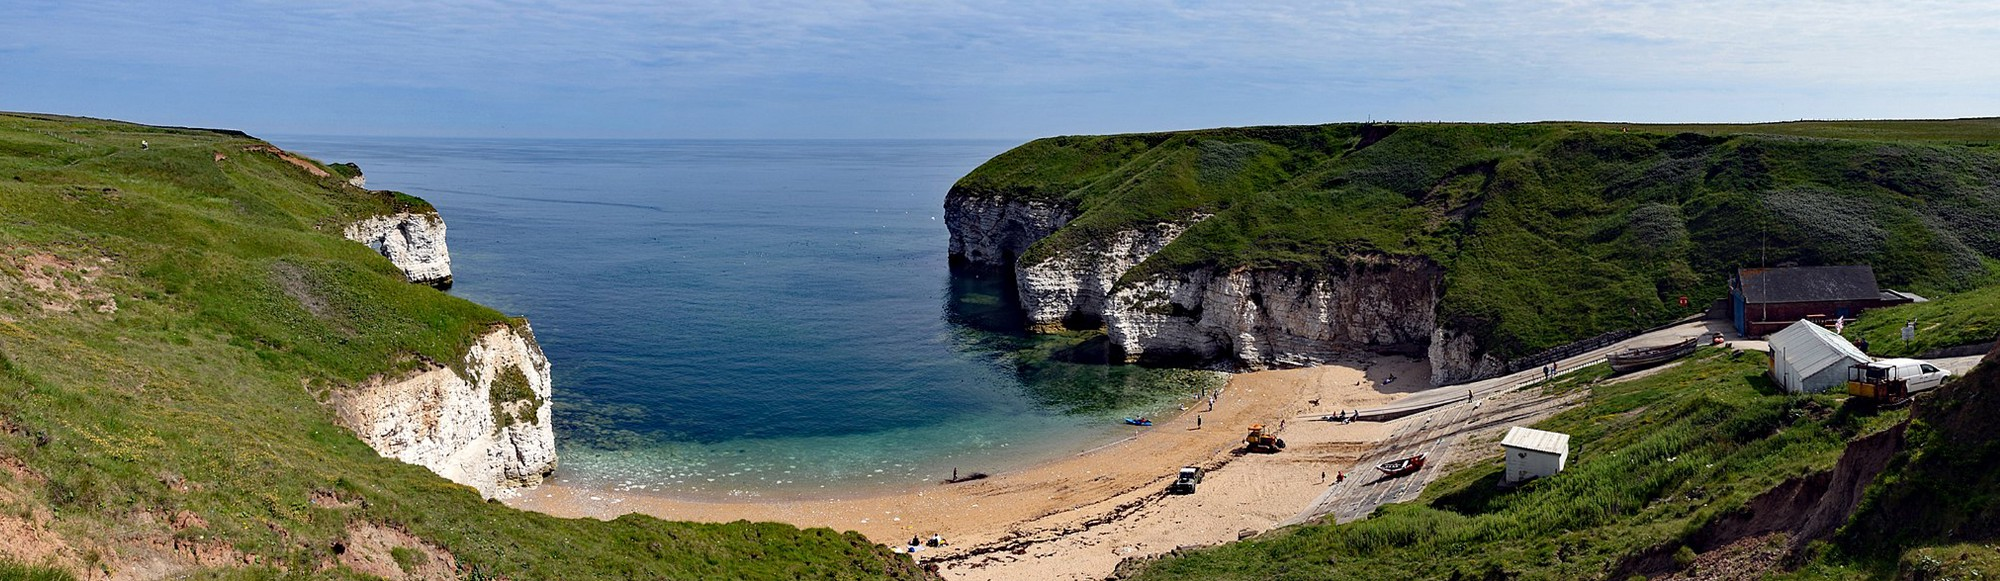 Sunny day looking down at the North Sea from North Landing, Flamborough, UK